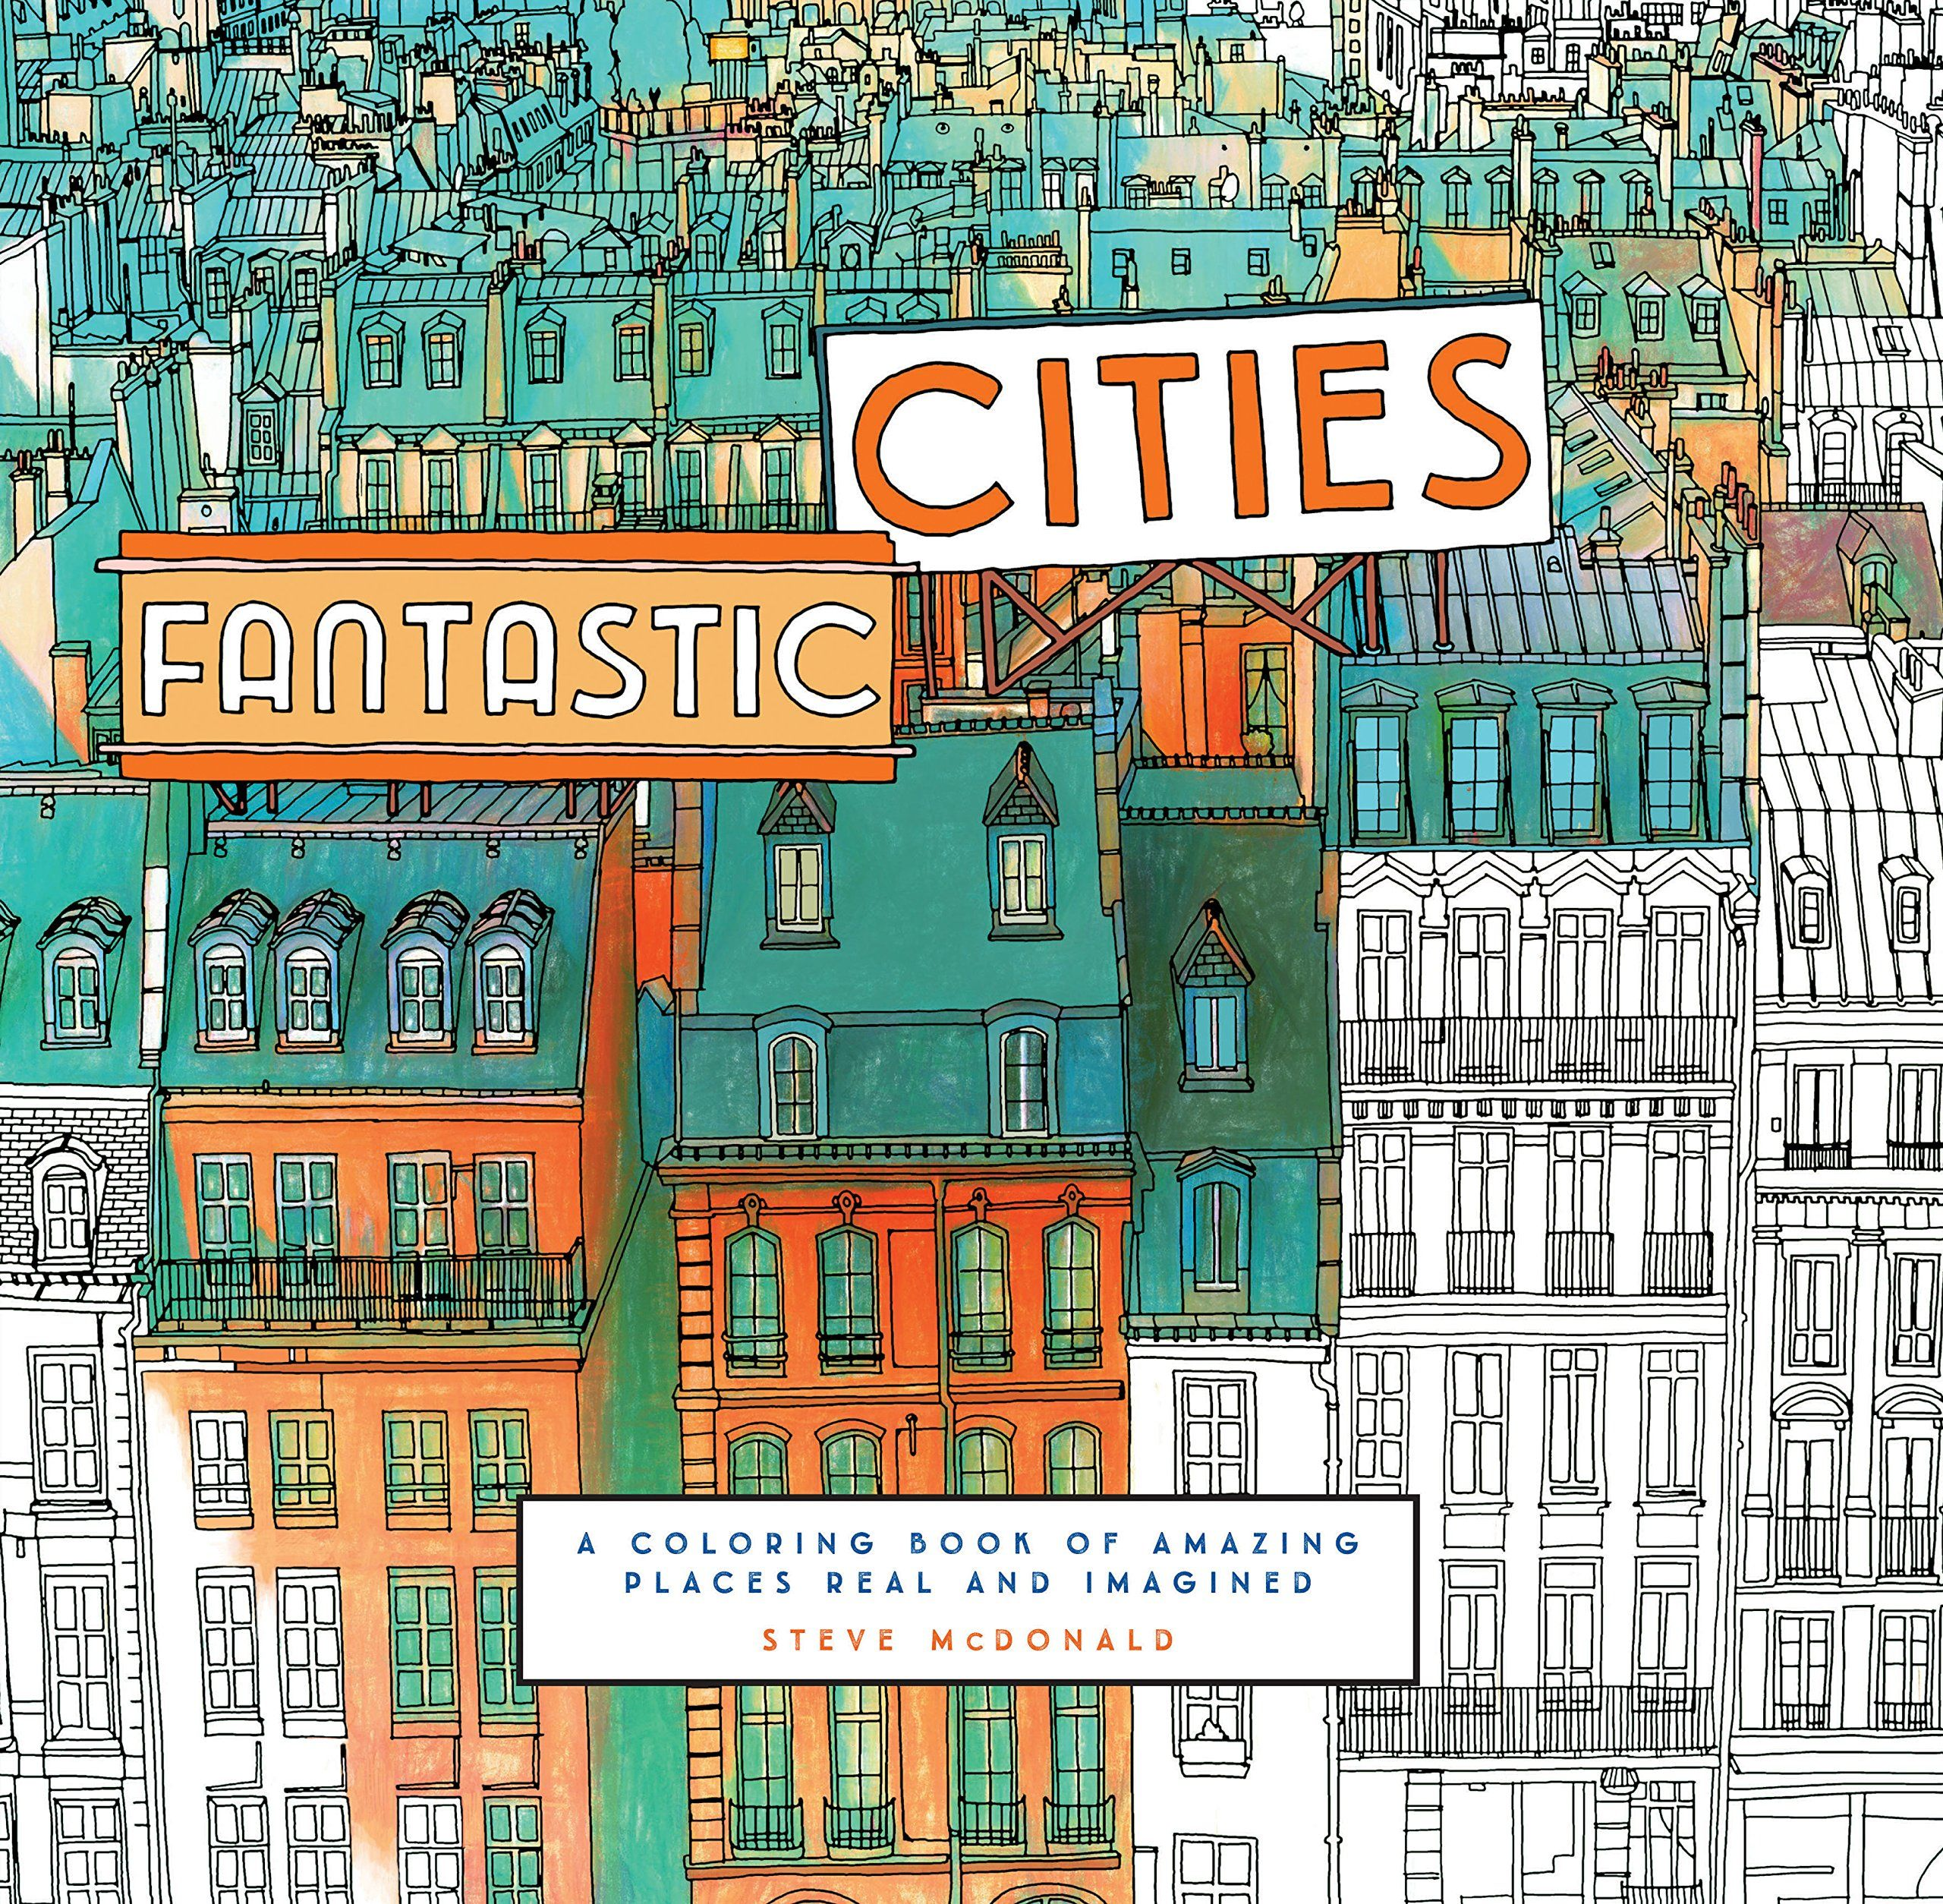 Fantastic Cities A Coloring Book For Grown Ups Get Lost In The Intricate Drawings